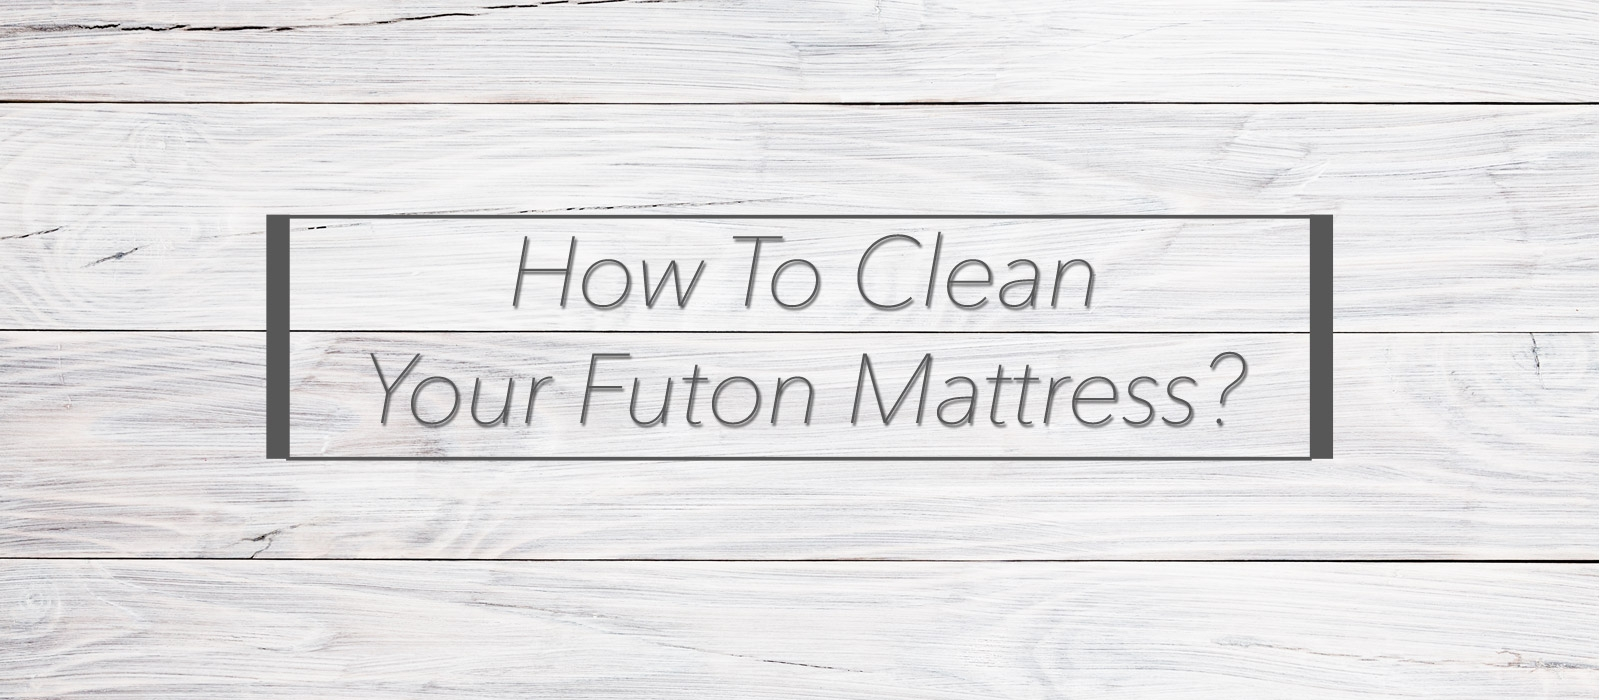 How To Clean Your Futon Mattress